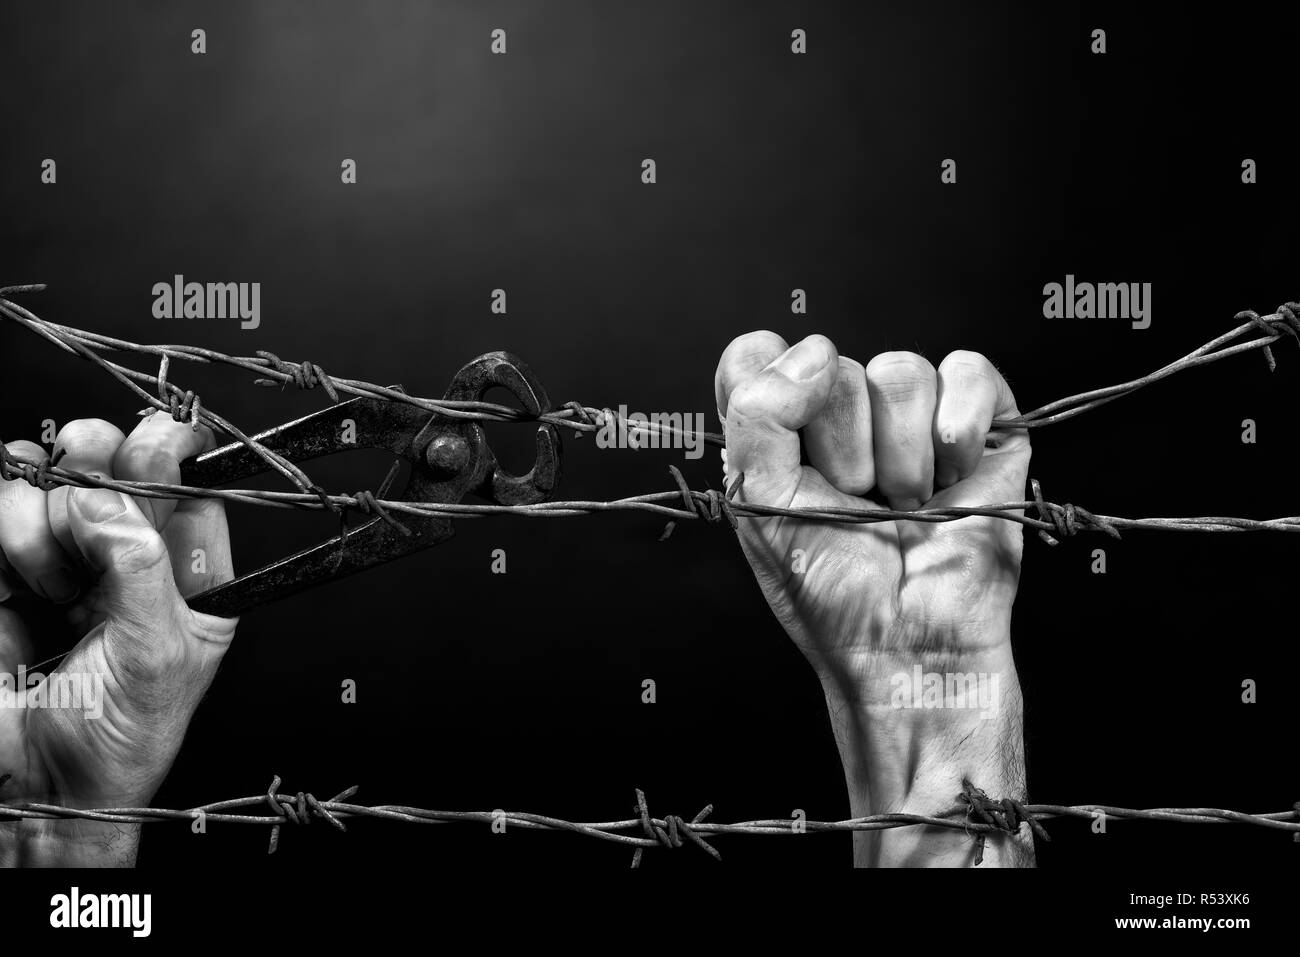 Man cuting a barbed wire fence. Black and white. - Stock Image